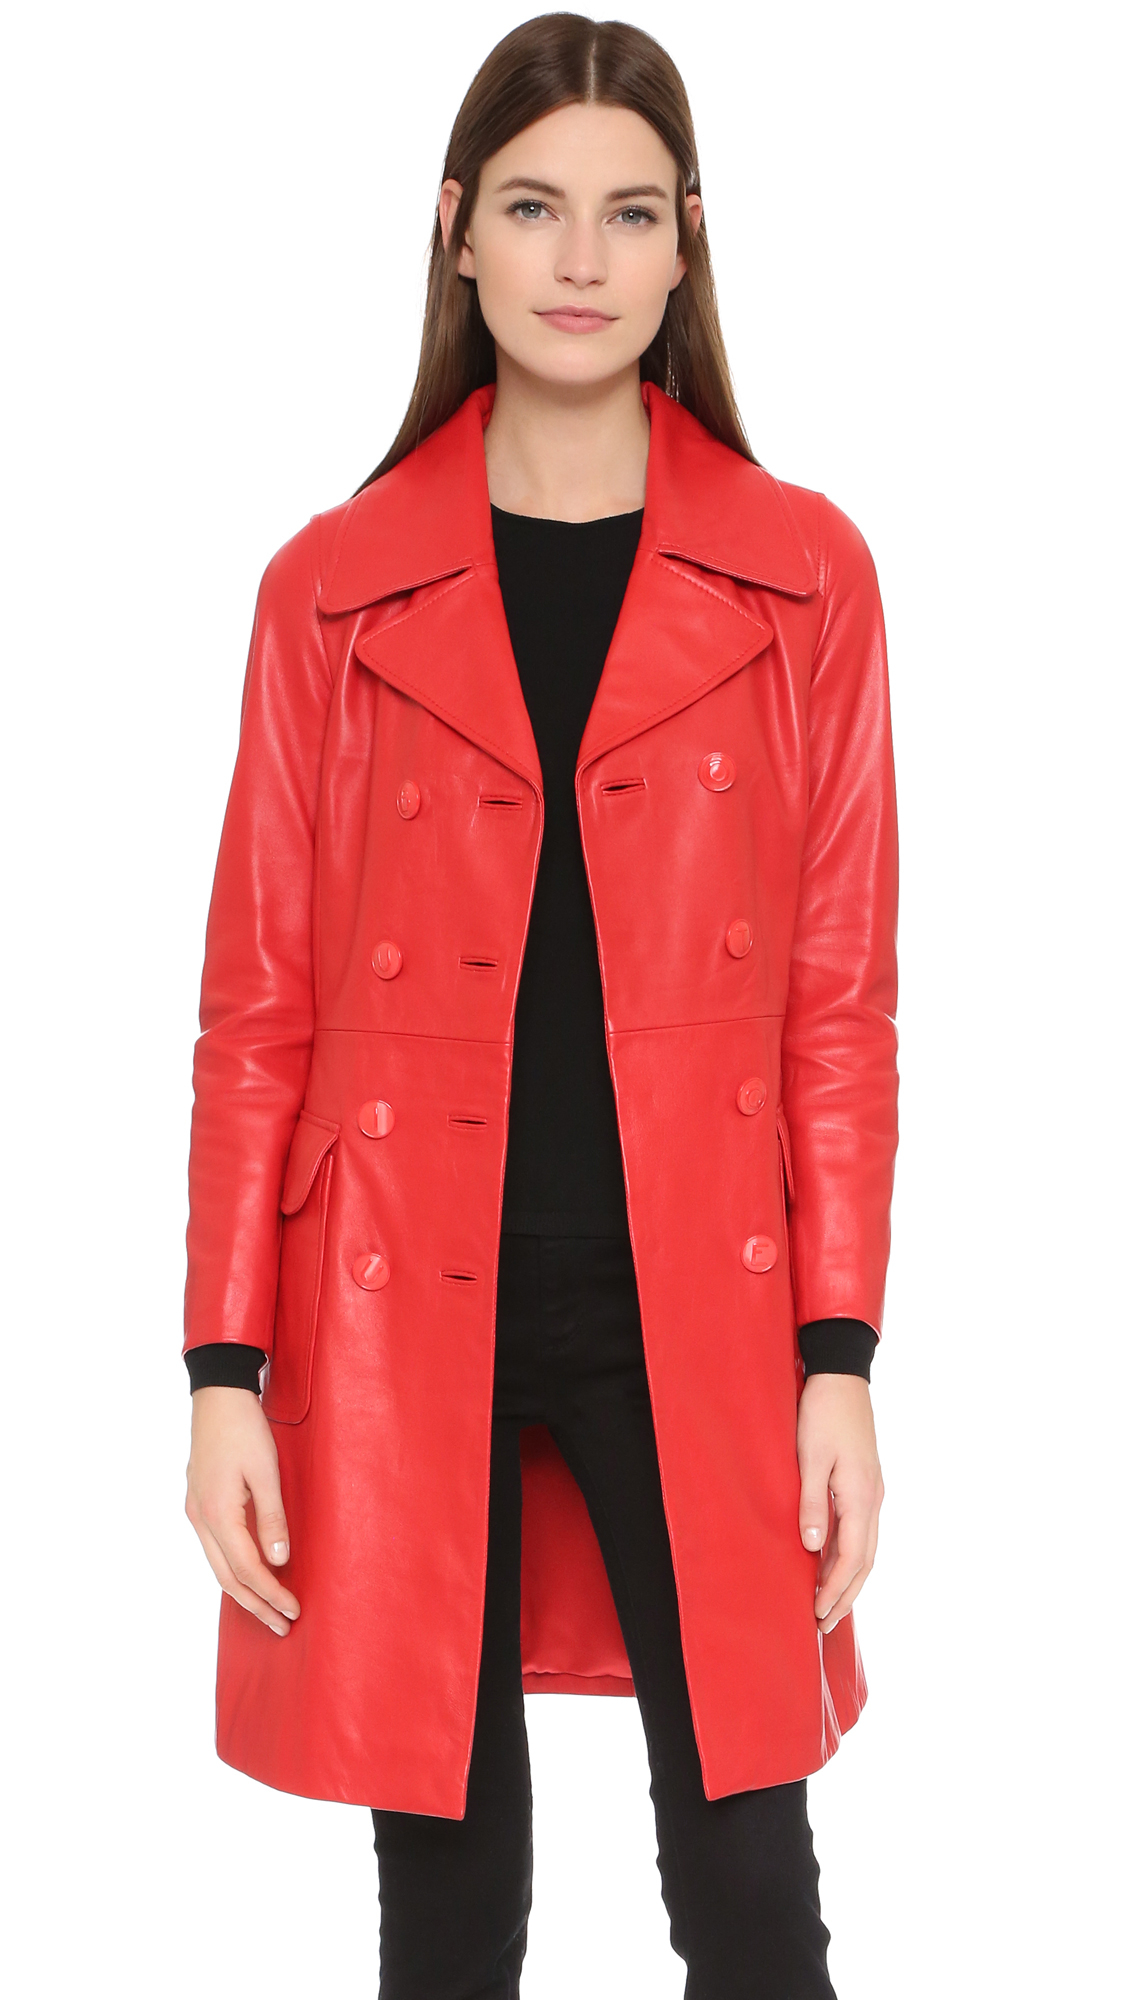 You searched for: leather trench coat! Etsy is the home to thousands of handmade, vintage, and one-of-a-kind products and gifts related to your search. No matter what you're looking for or where you are in the world, our global marketplace of sellers can help you find unique and affordable options. Let's get started!